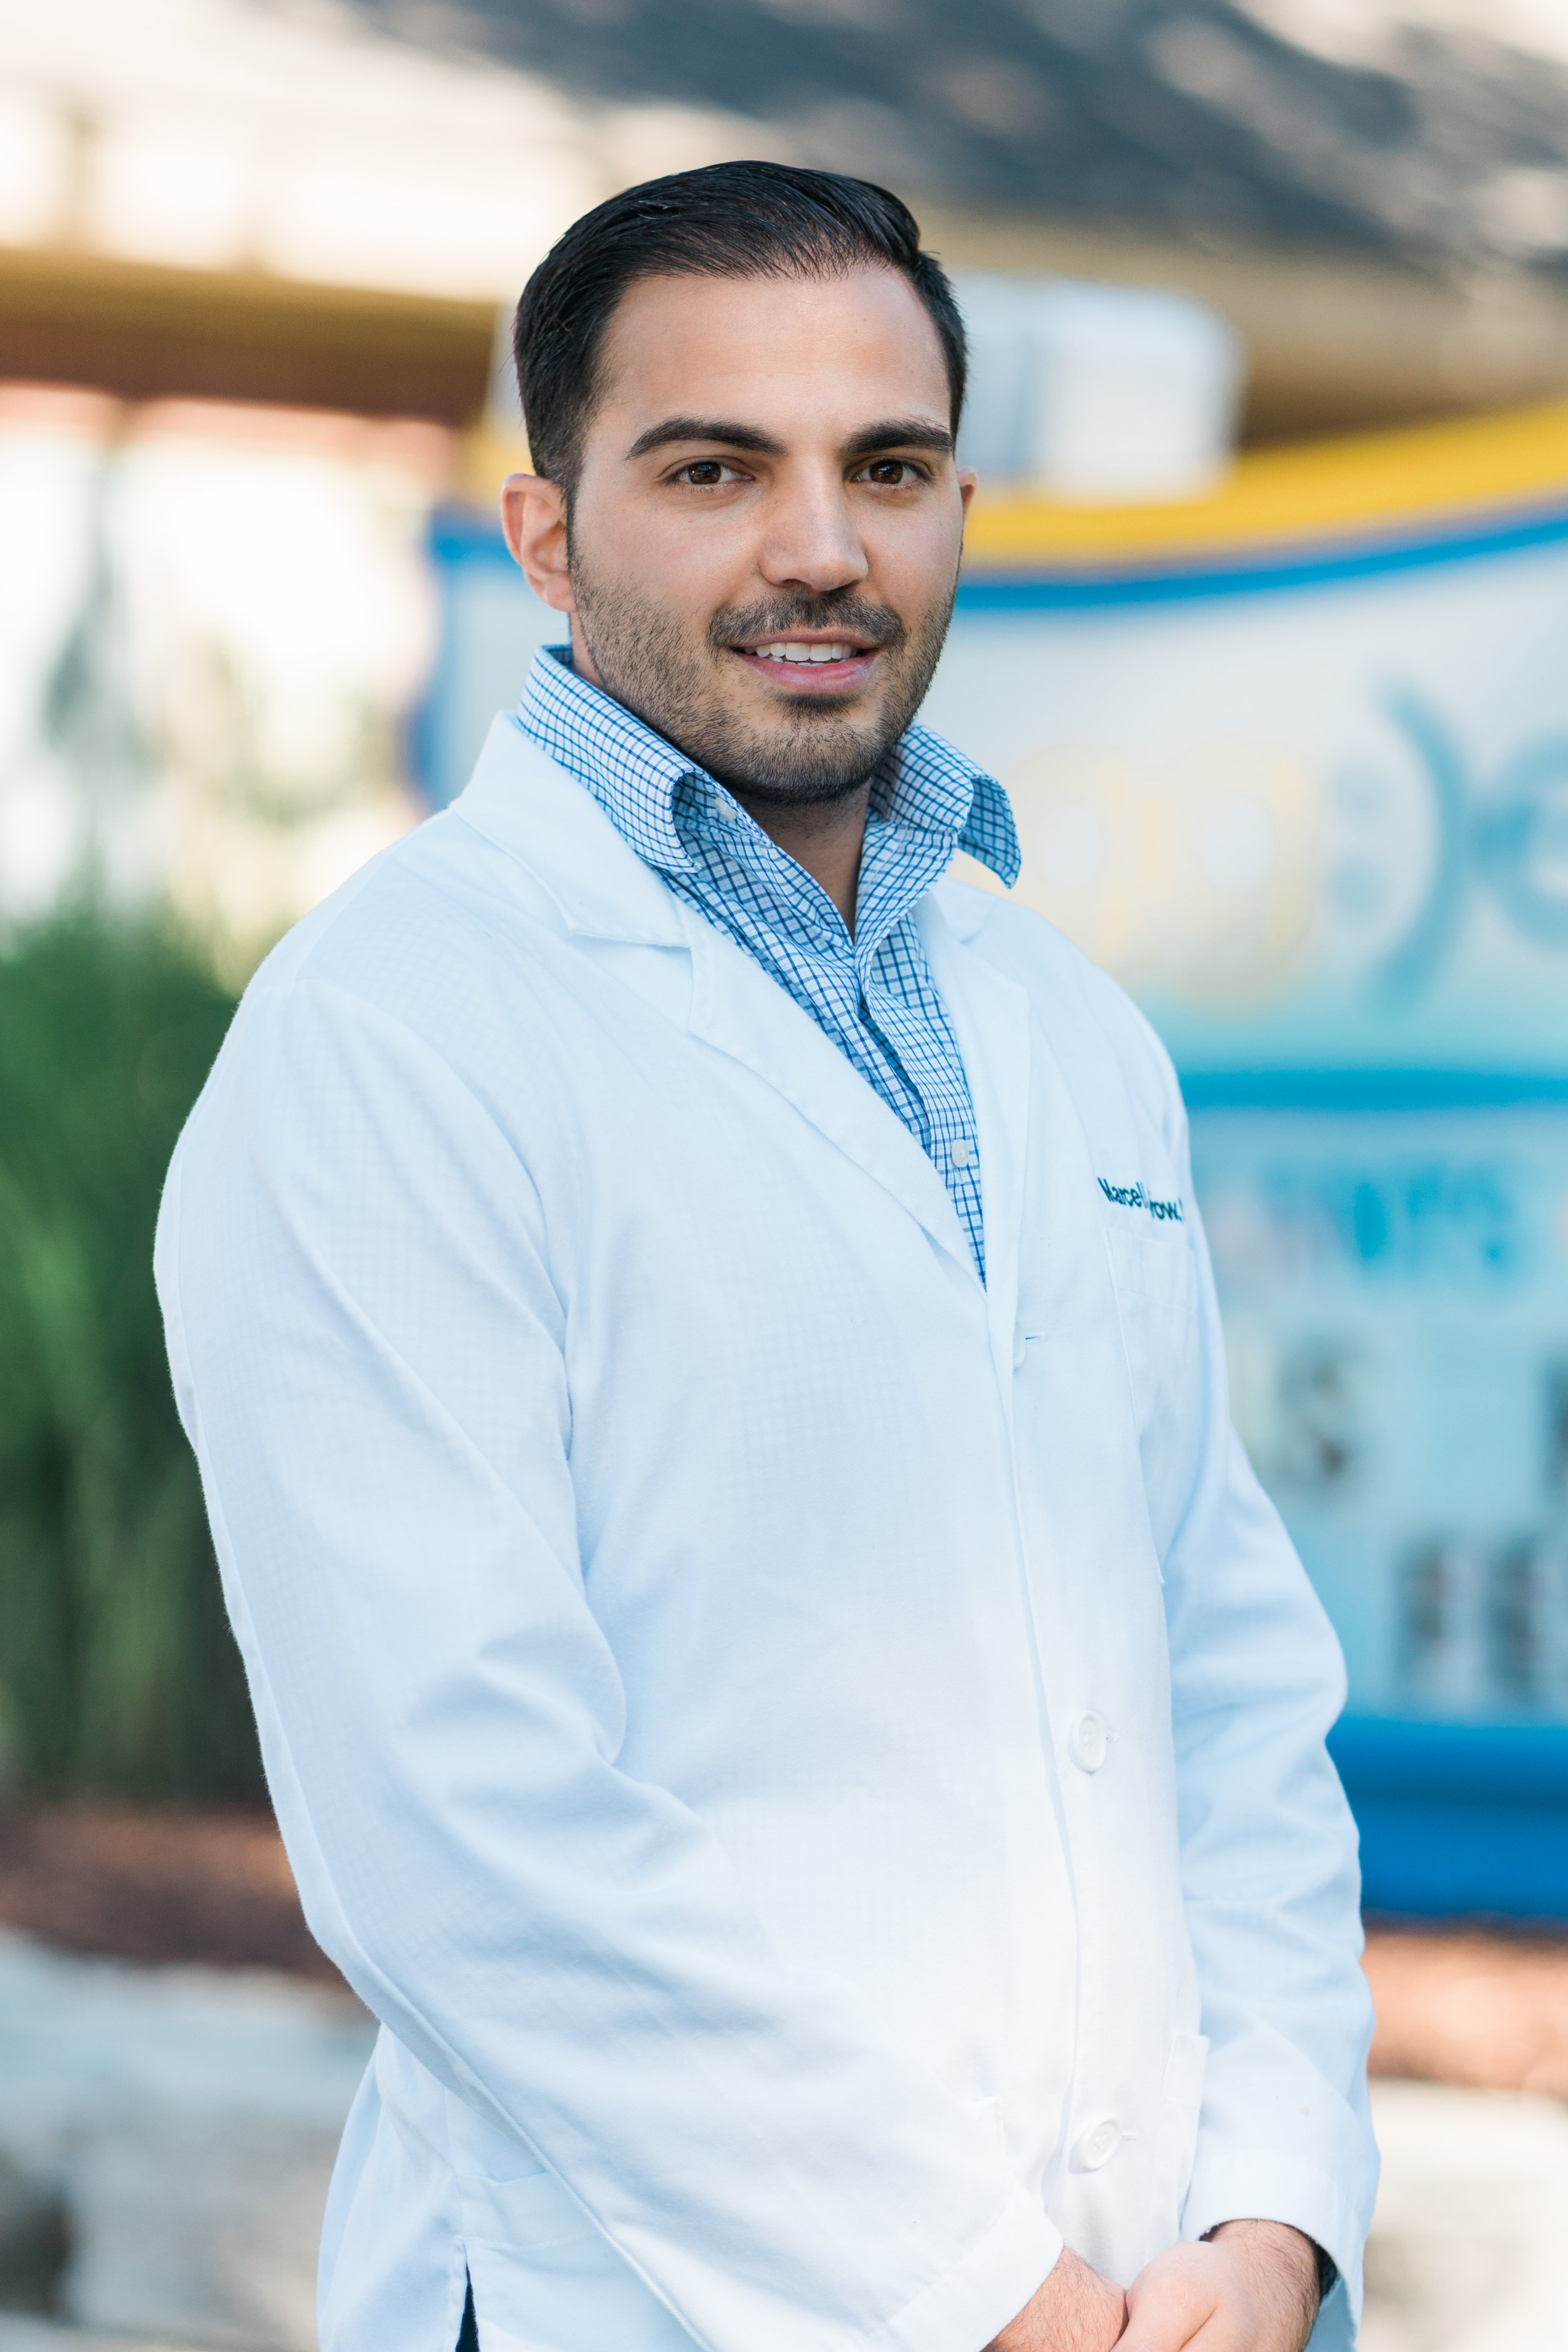 Dr. Marcell Orow DDS